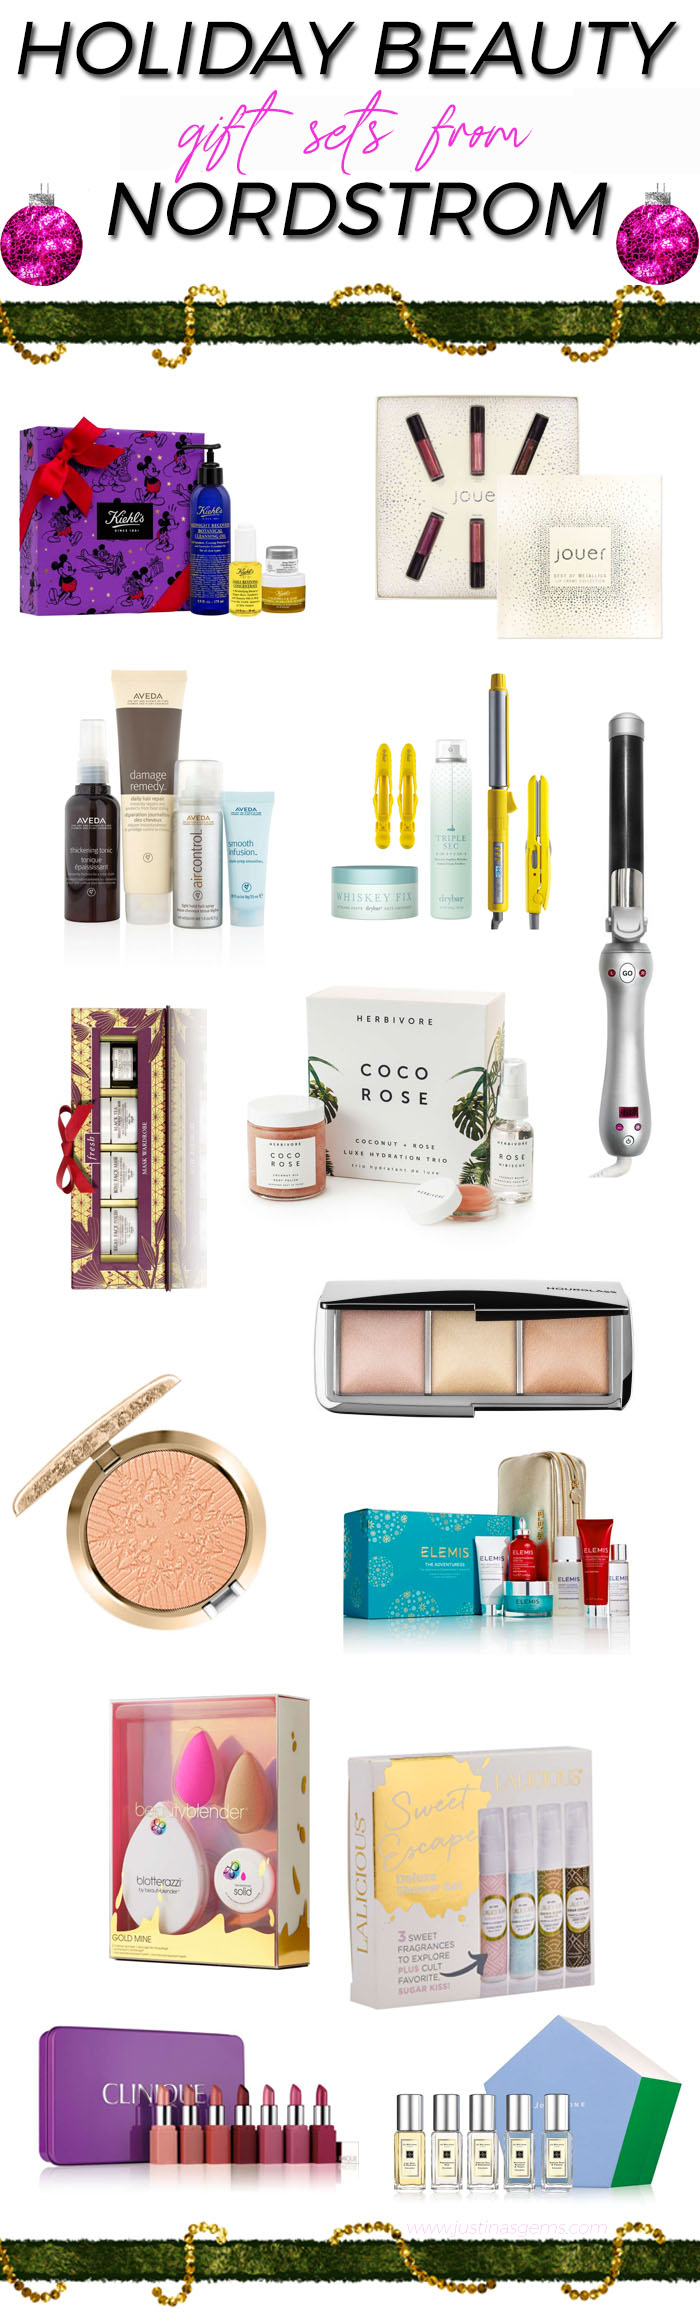 Holiday Beauty Gift Sets from Nordstrom #giftguide #holiday #beauty #nordstrom